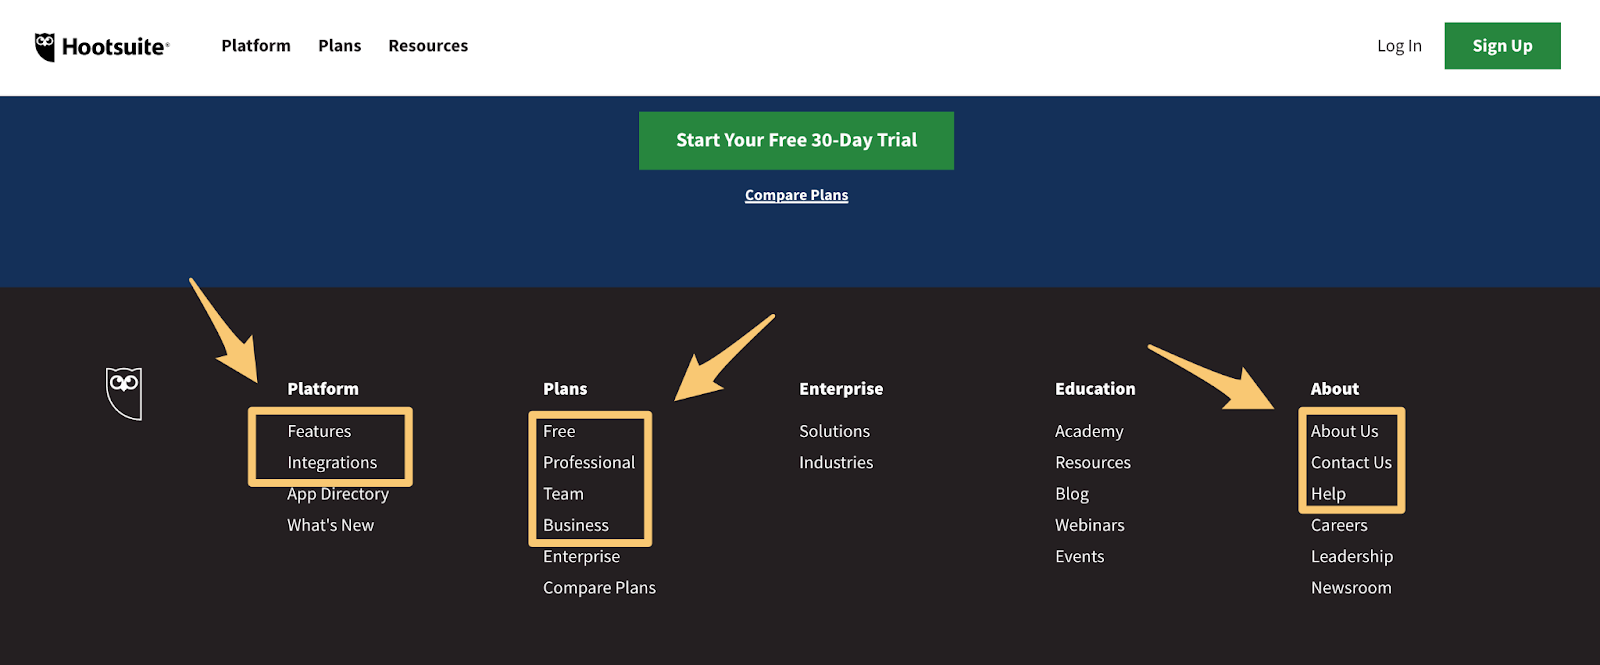 finding info in the footer for writing your product comparison